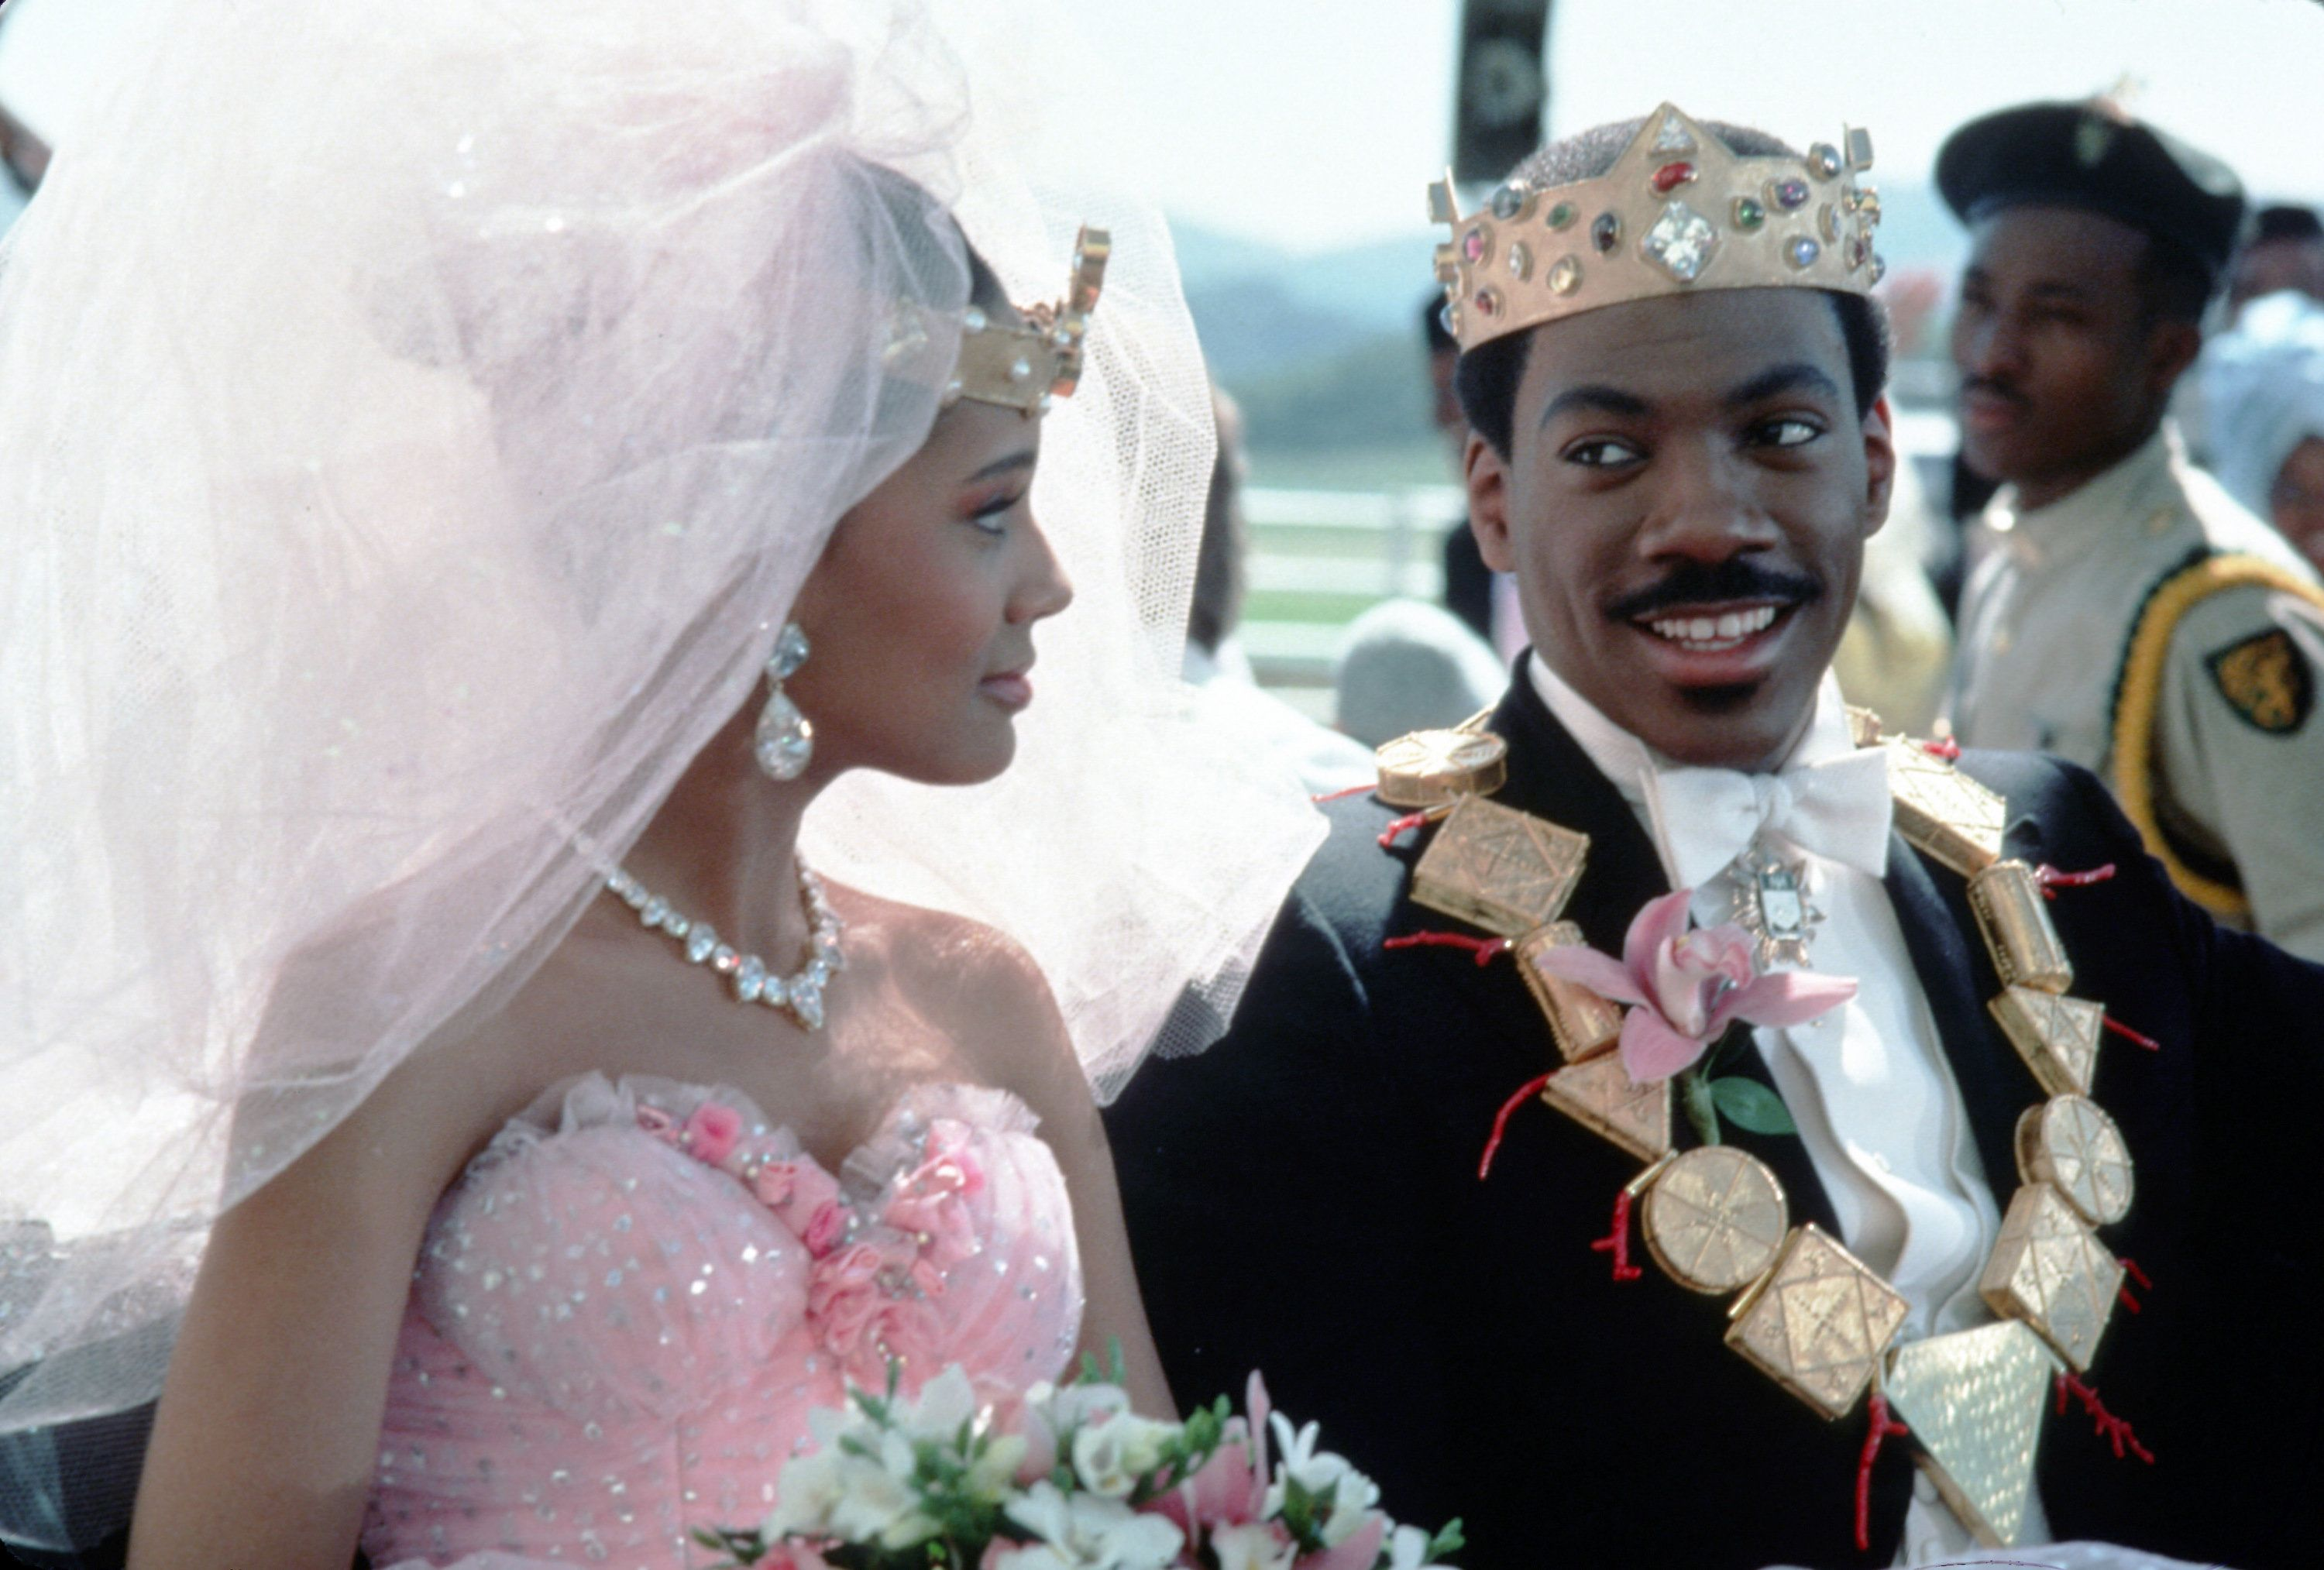 Lisa and Akeem at their wedding ceremony